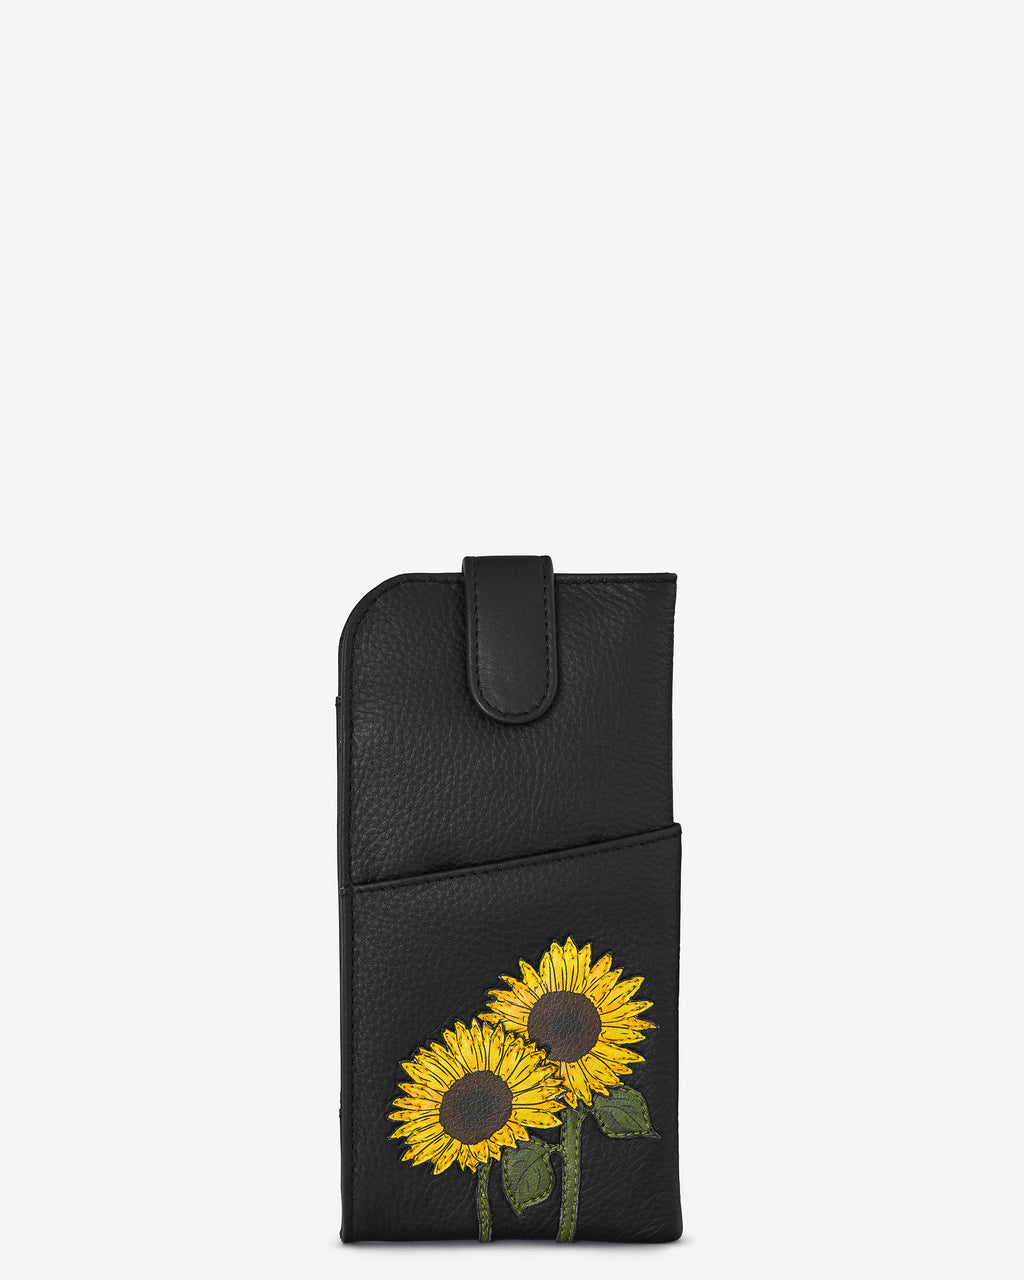 Sunflowers Leather Glasses Case